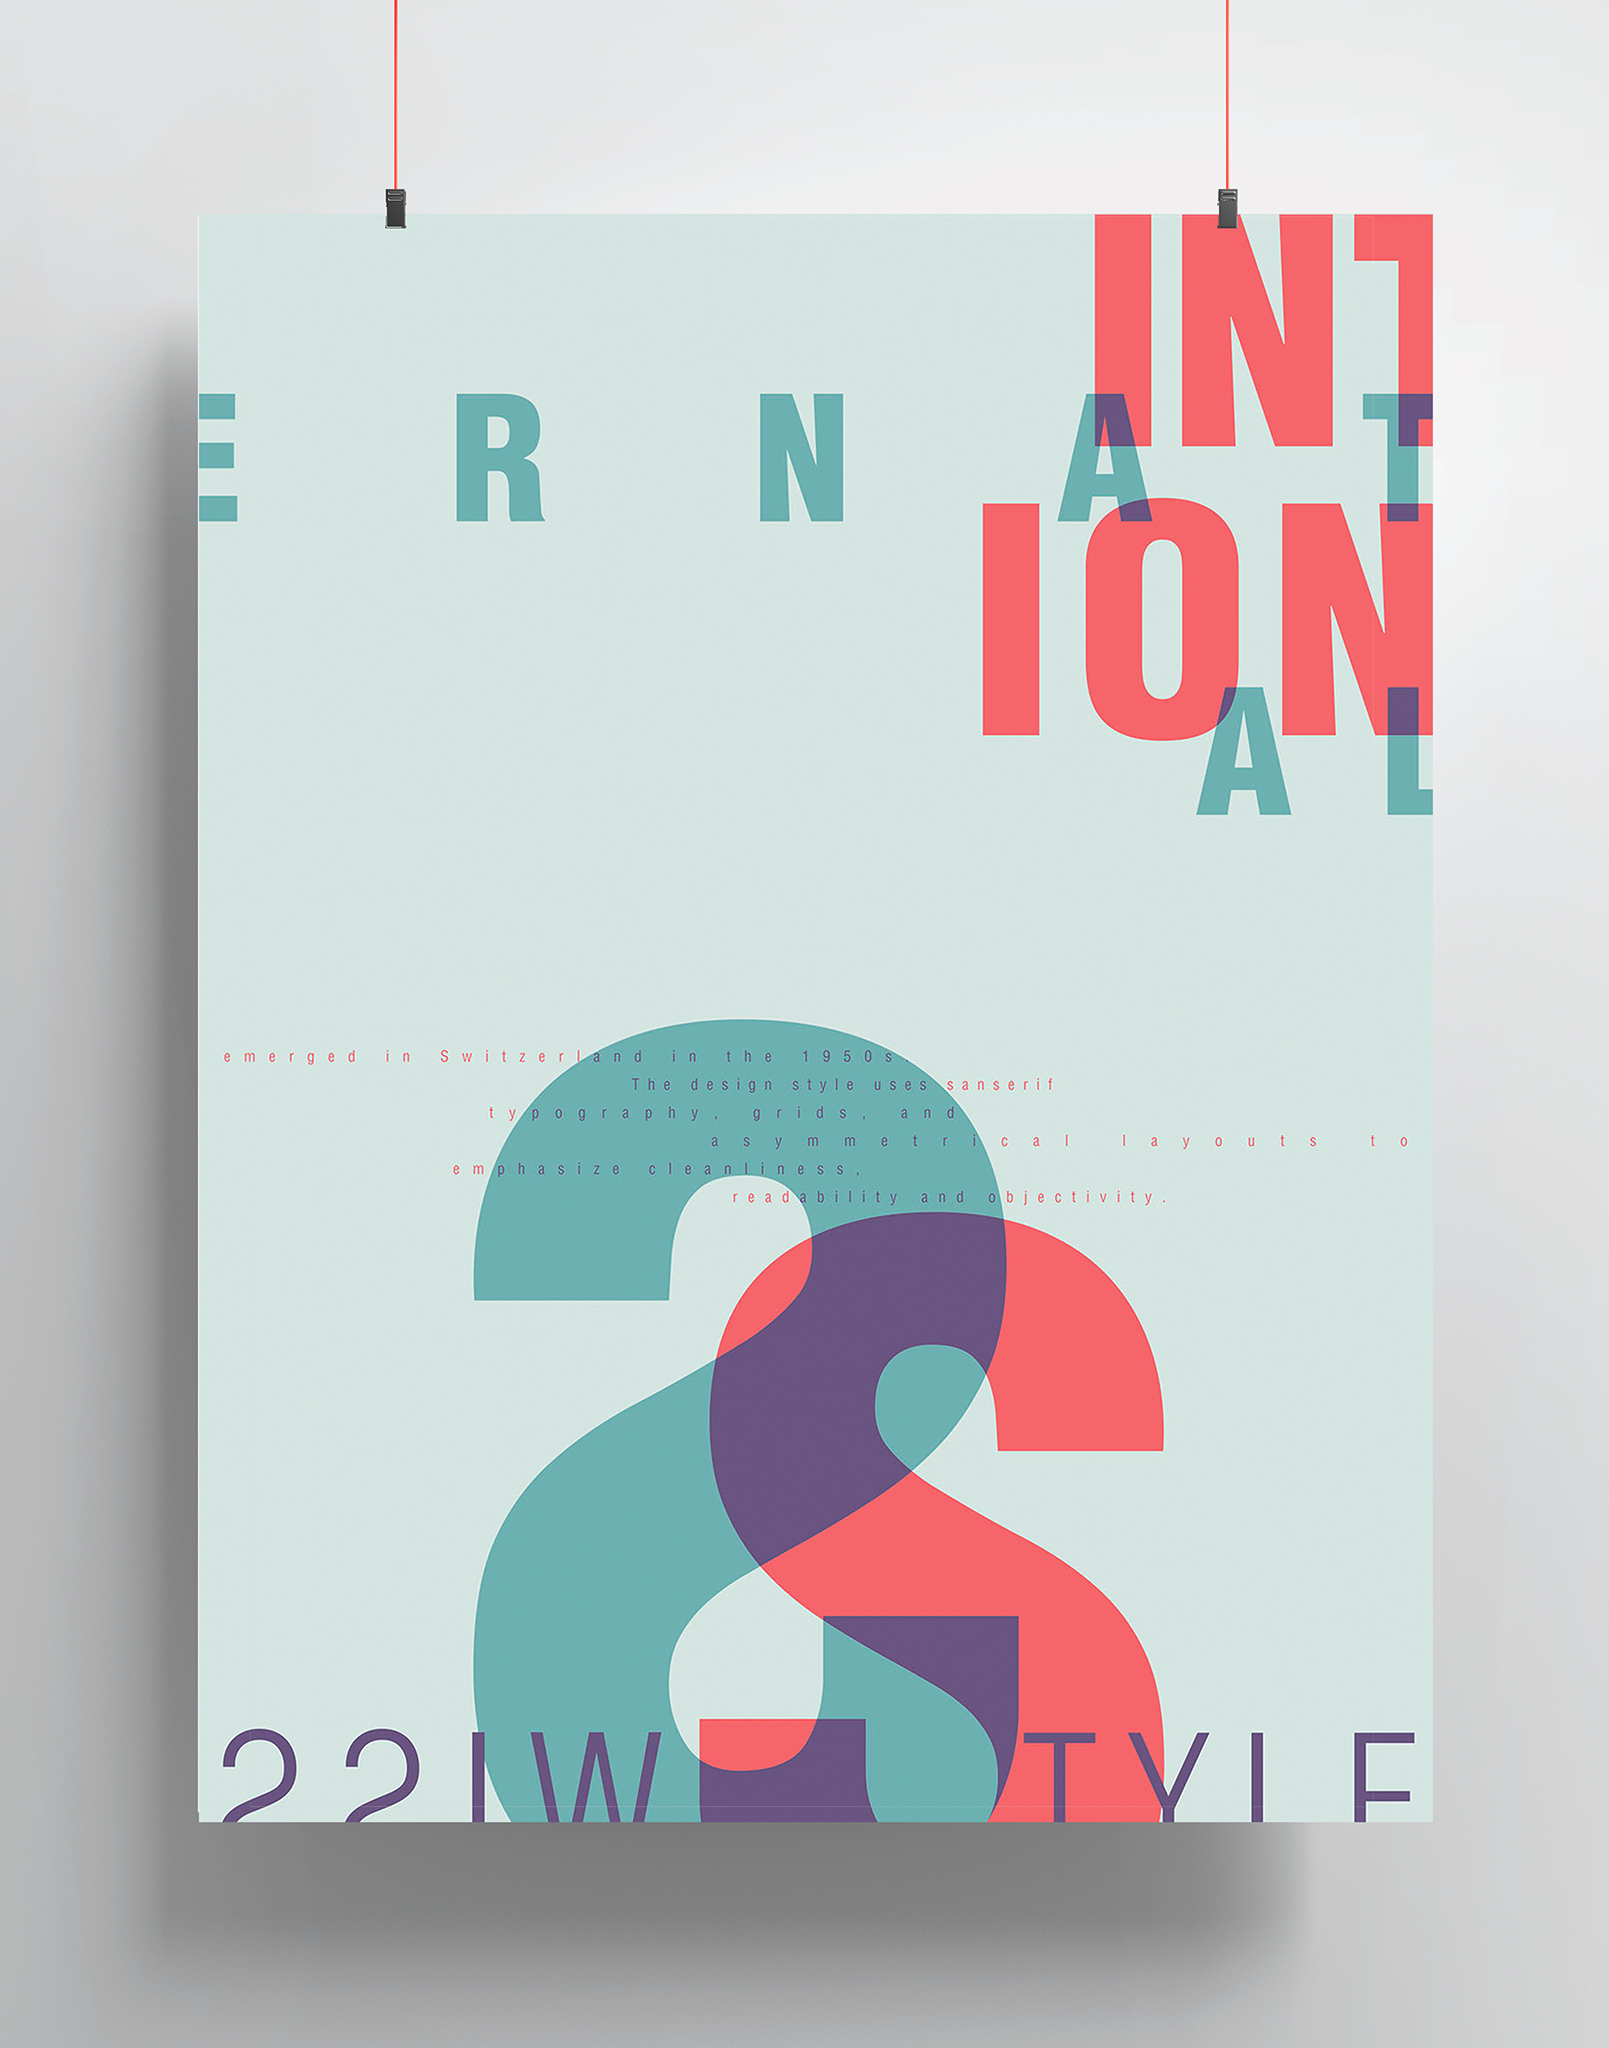 a poster with red and green text that reads international in an abstract fashion on a grey background